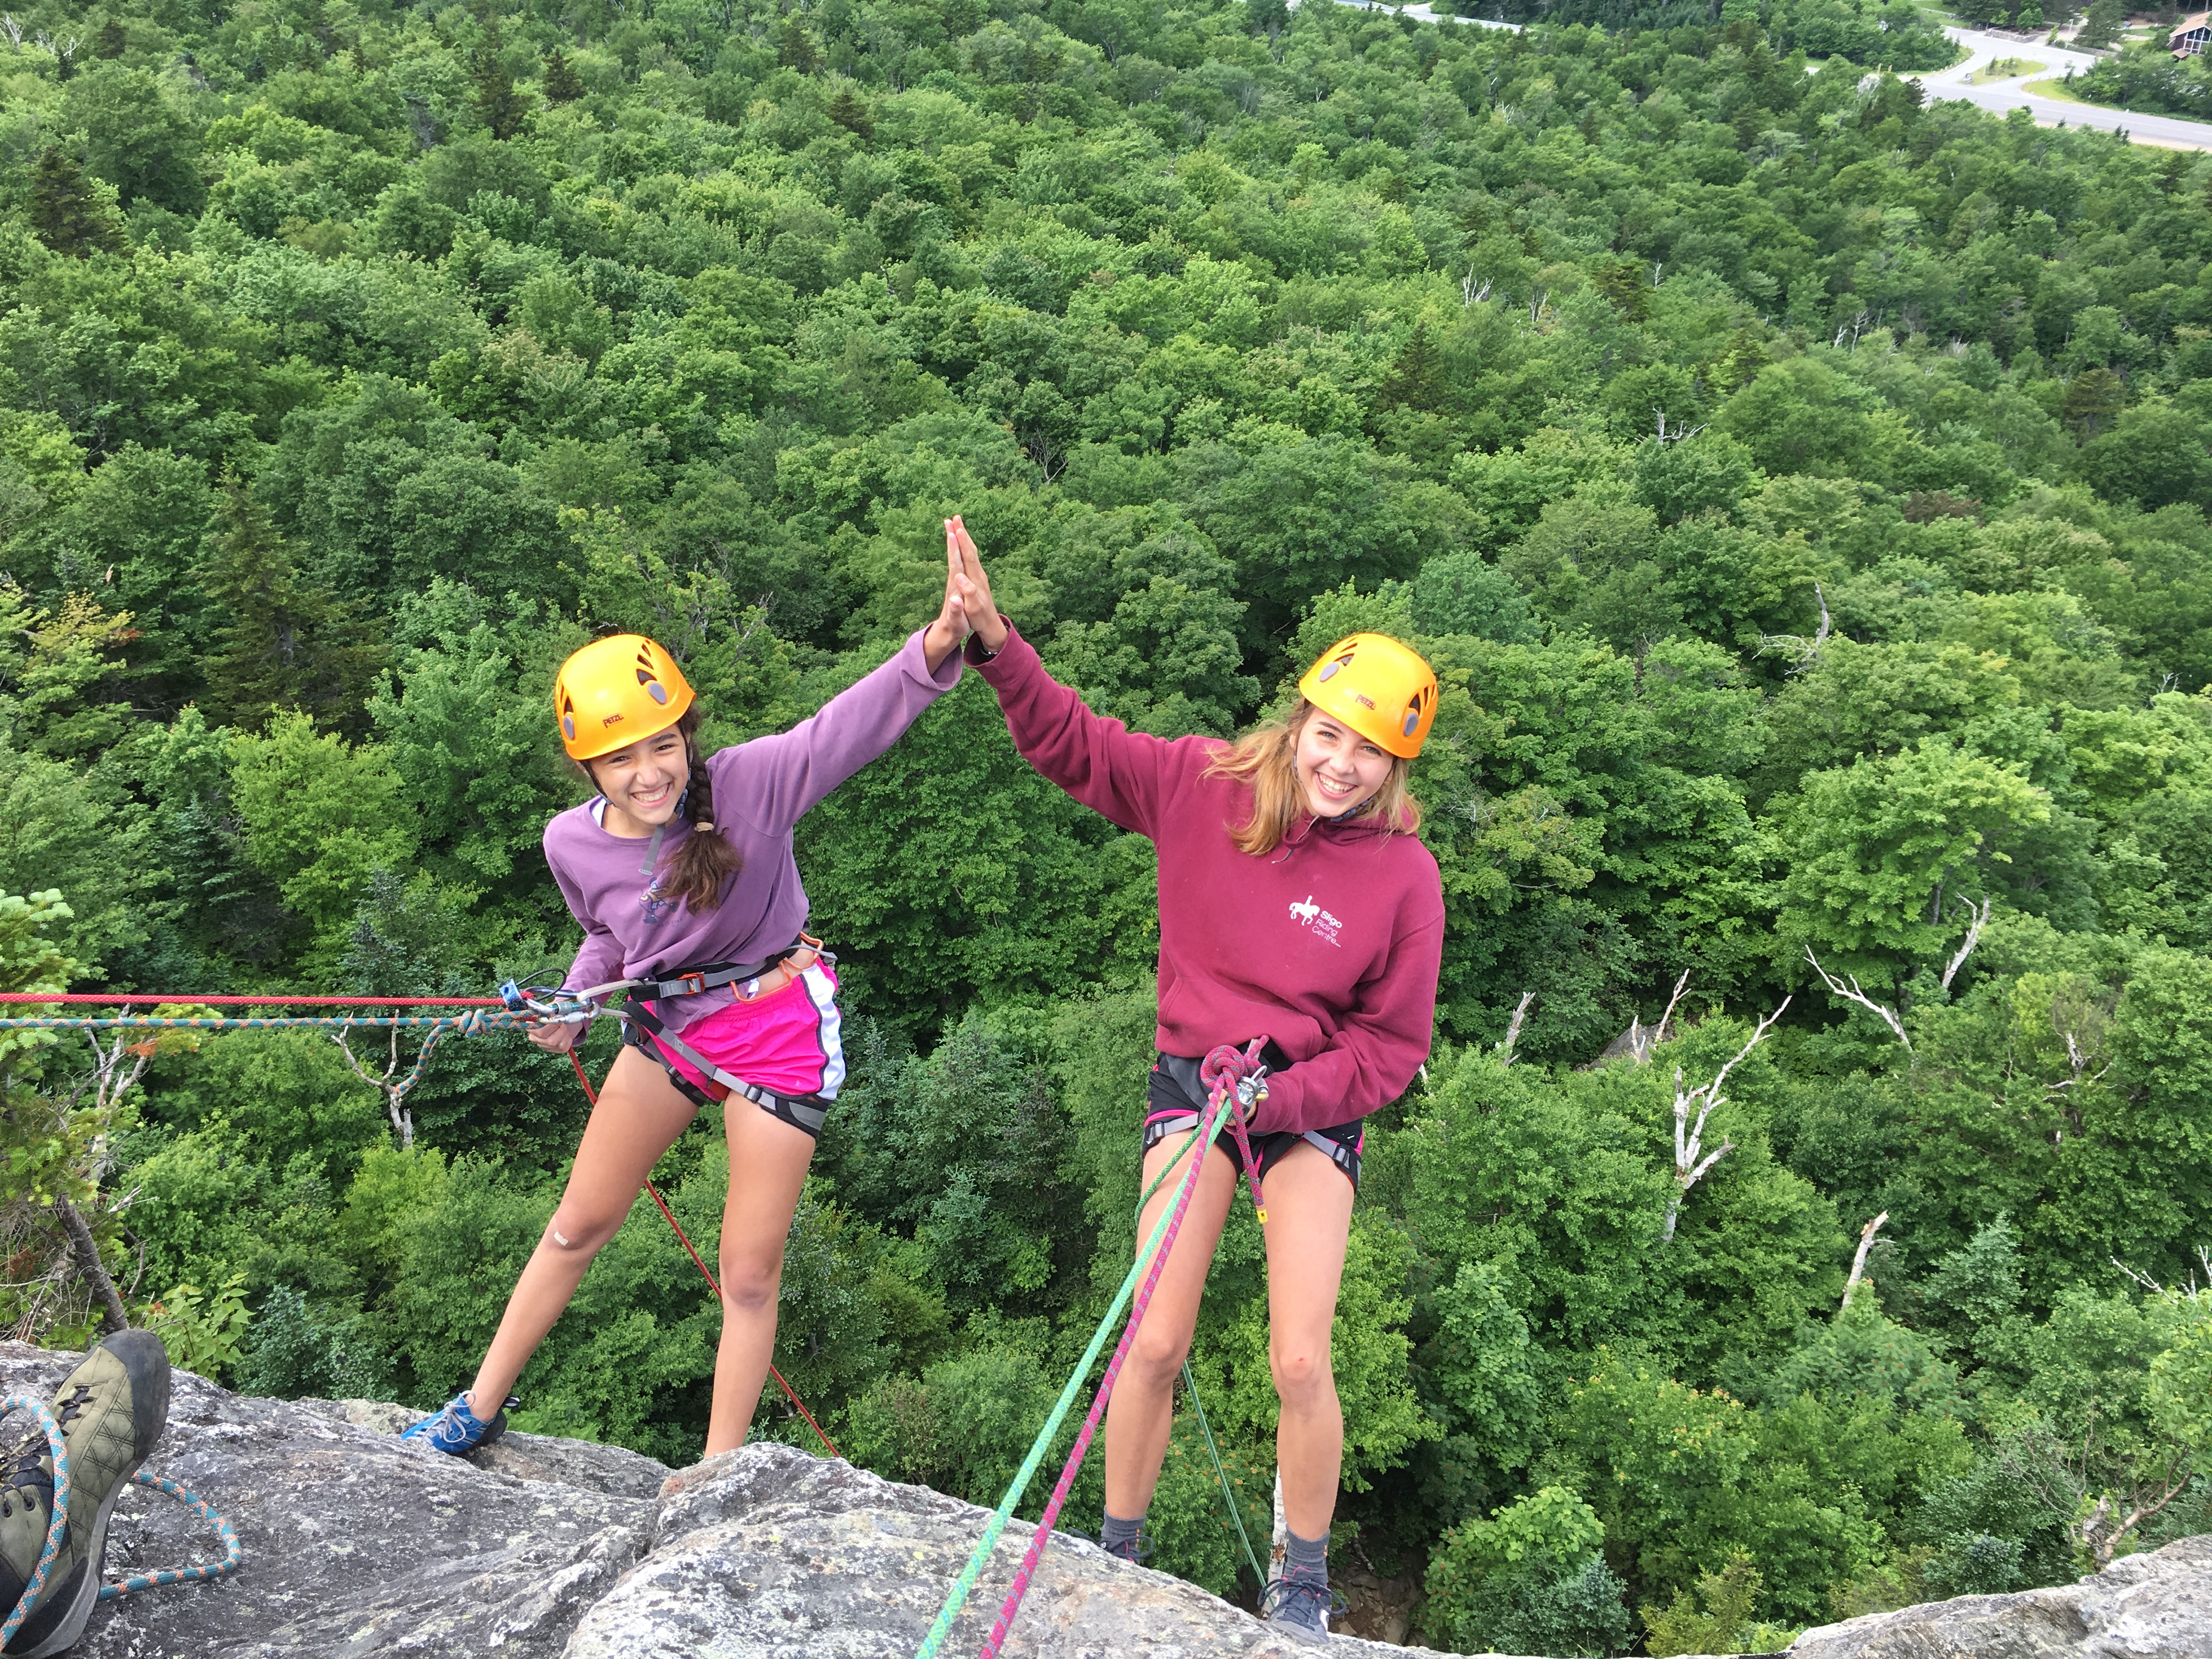 Summer Program - Rock Climbing | AMC's Teen Wilderness Adventures: 10-Day Multisport Adventure - Backpack, Climb, Canoe (Ages 14-16)